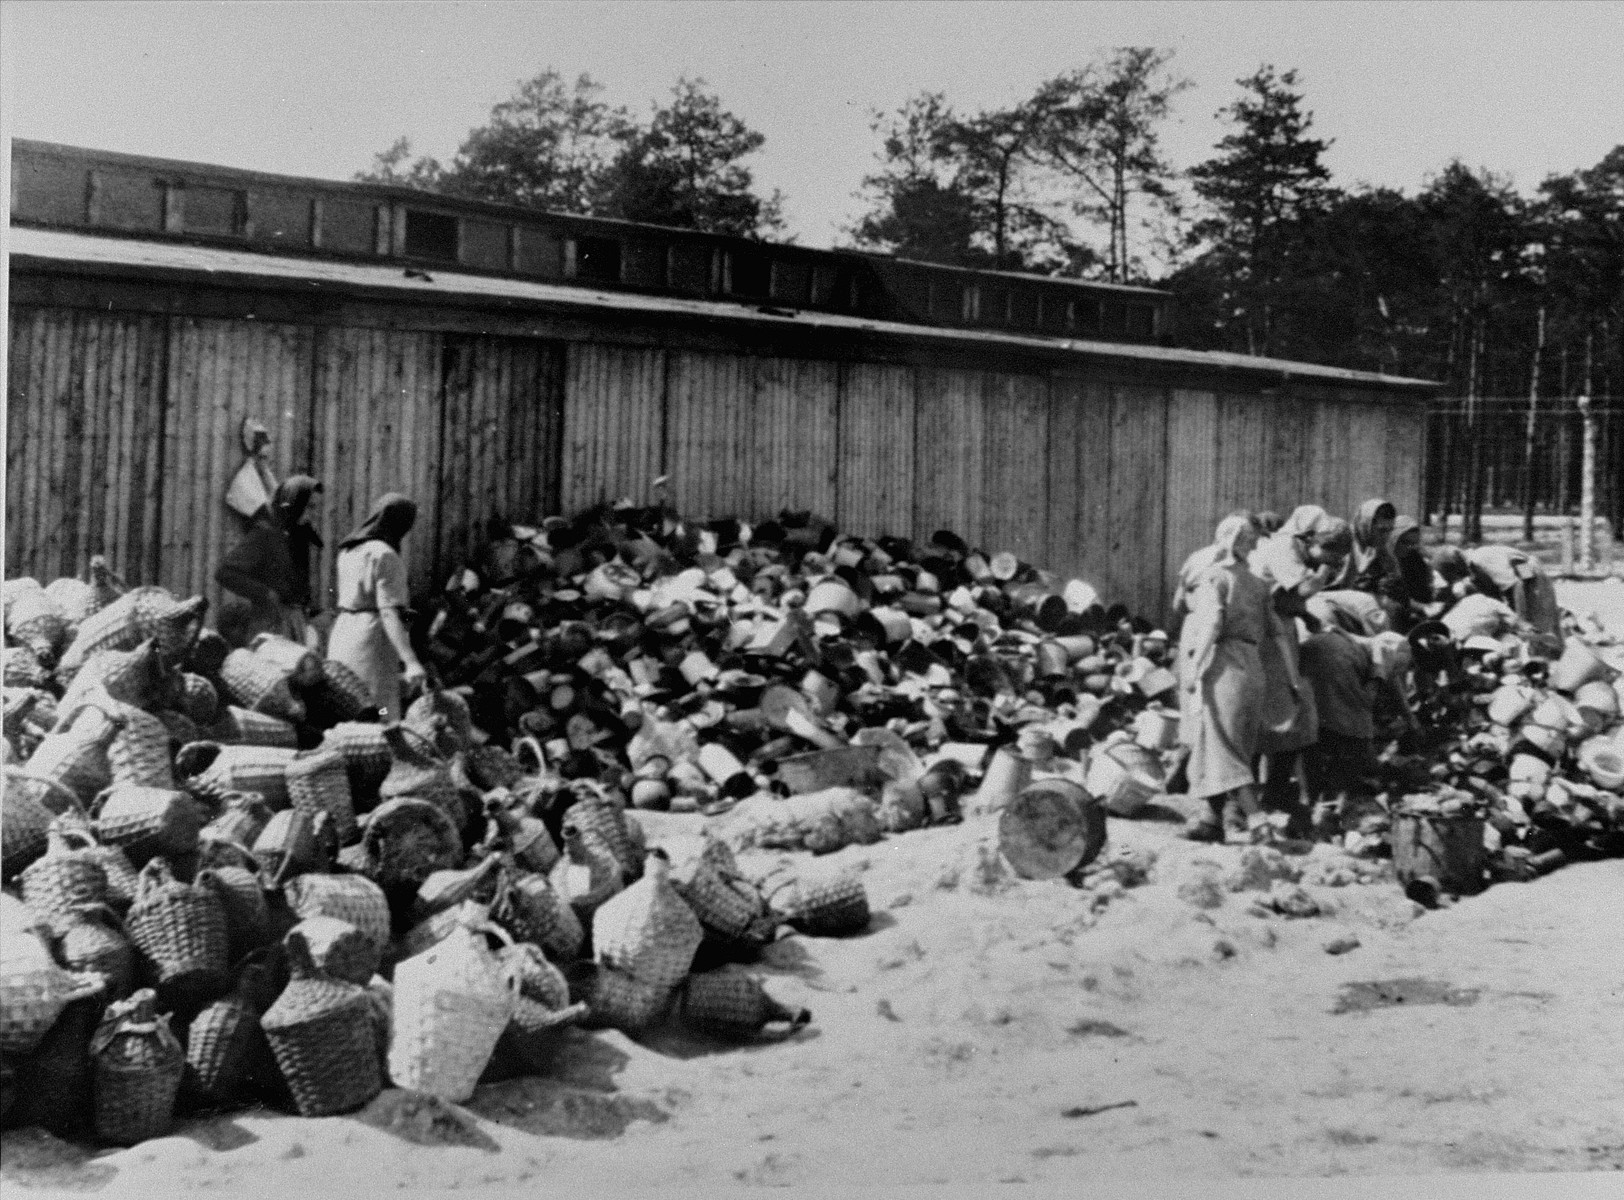 """Female prisoners in the Aufräumungskommando (order commandos) sort the confiscated property of a transport of Jews from Subcarpathian Rus at a warehouse in Auschwitz-Birkenau.  The camp prisoners came to refer to the looted property as """"Kanada,"""" associating it with the riches symbolized by Kanada.  The members of this commando were almost exclusively Jews.  """"Kanada"""" storage facilities occupied several dozen barracks and other buildings around the camp.  The looted property was funneled from Auschwitz through an extensive distribution network that served many individuals and various economic branches of the Third Reich."""